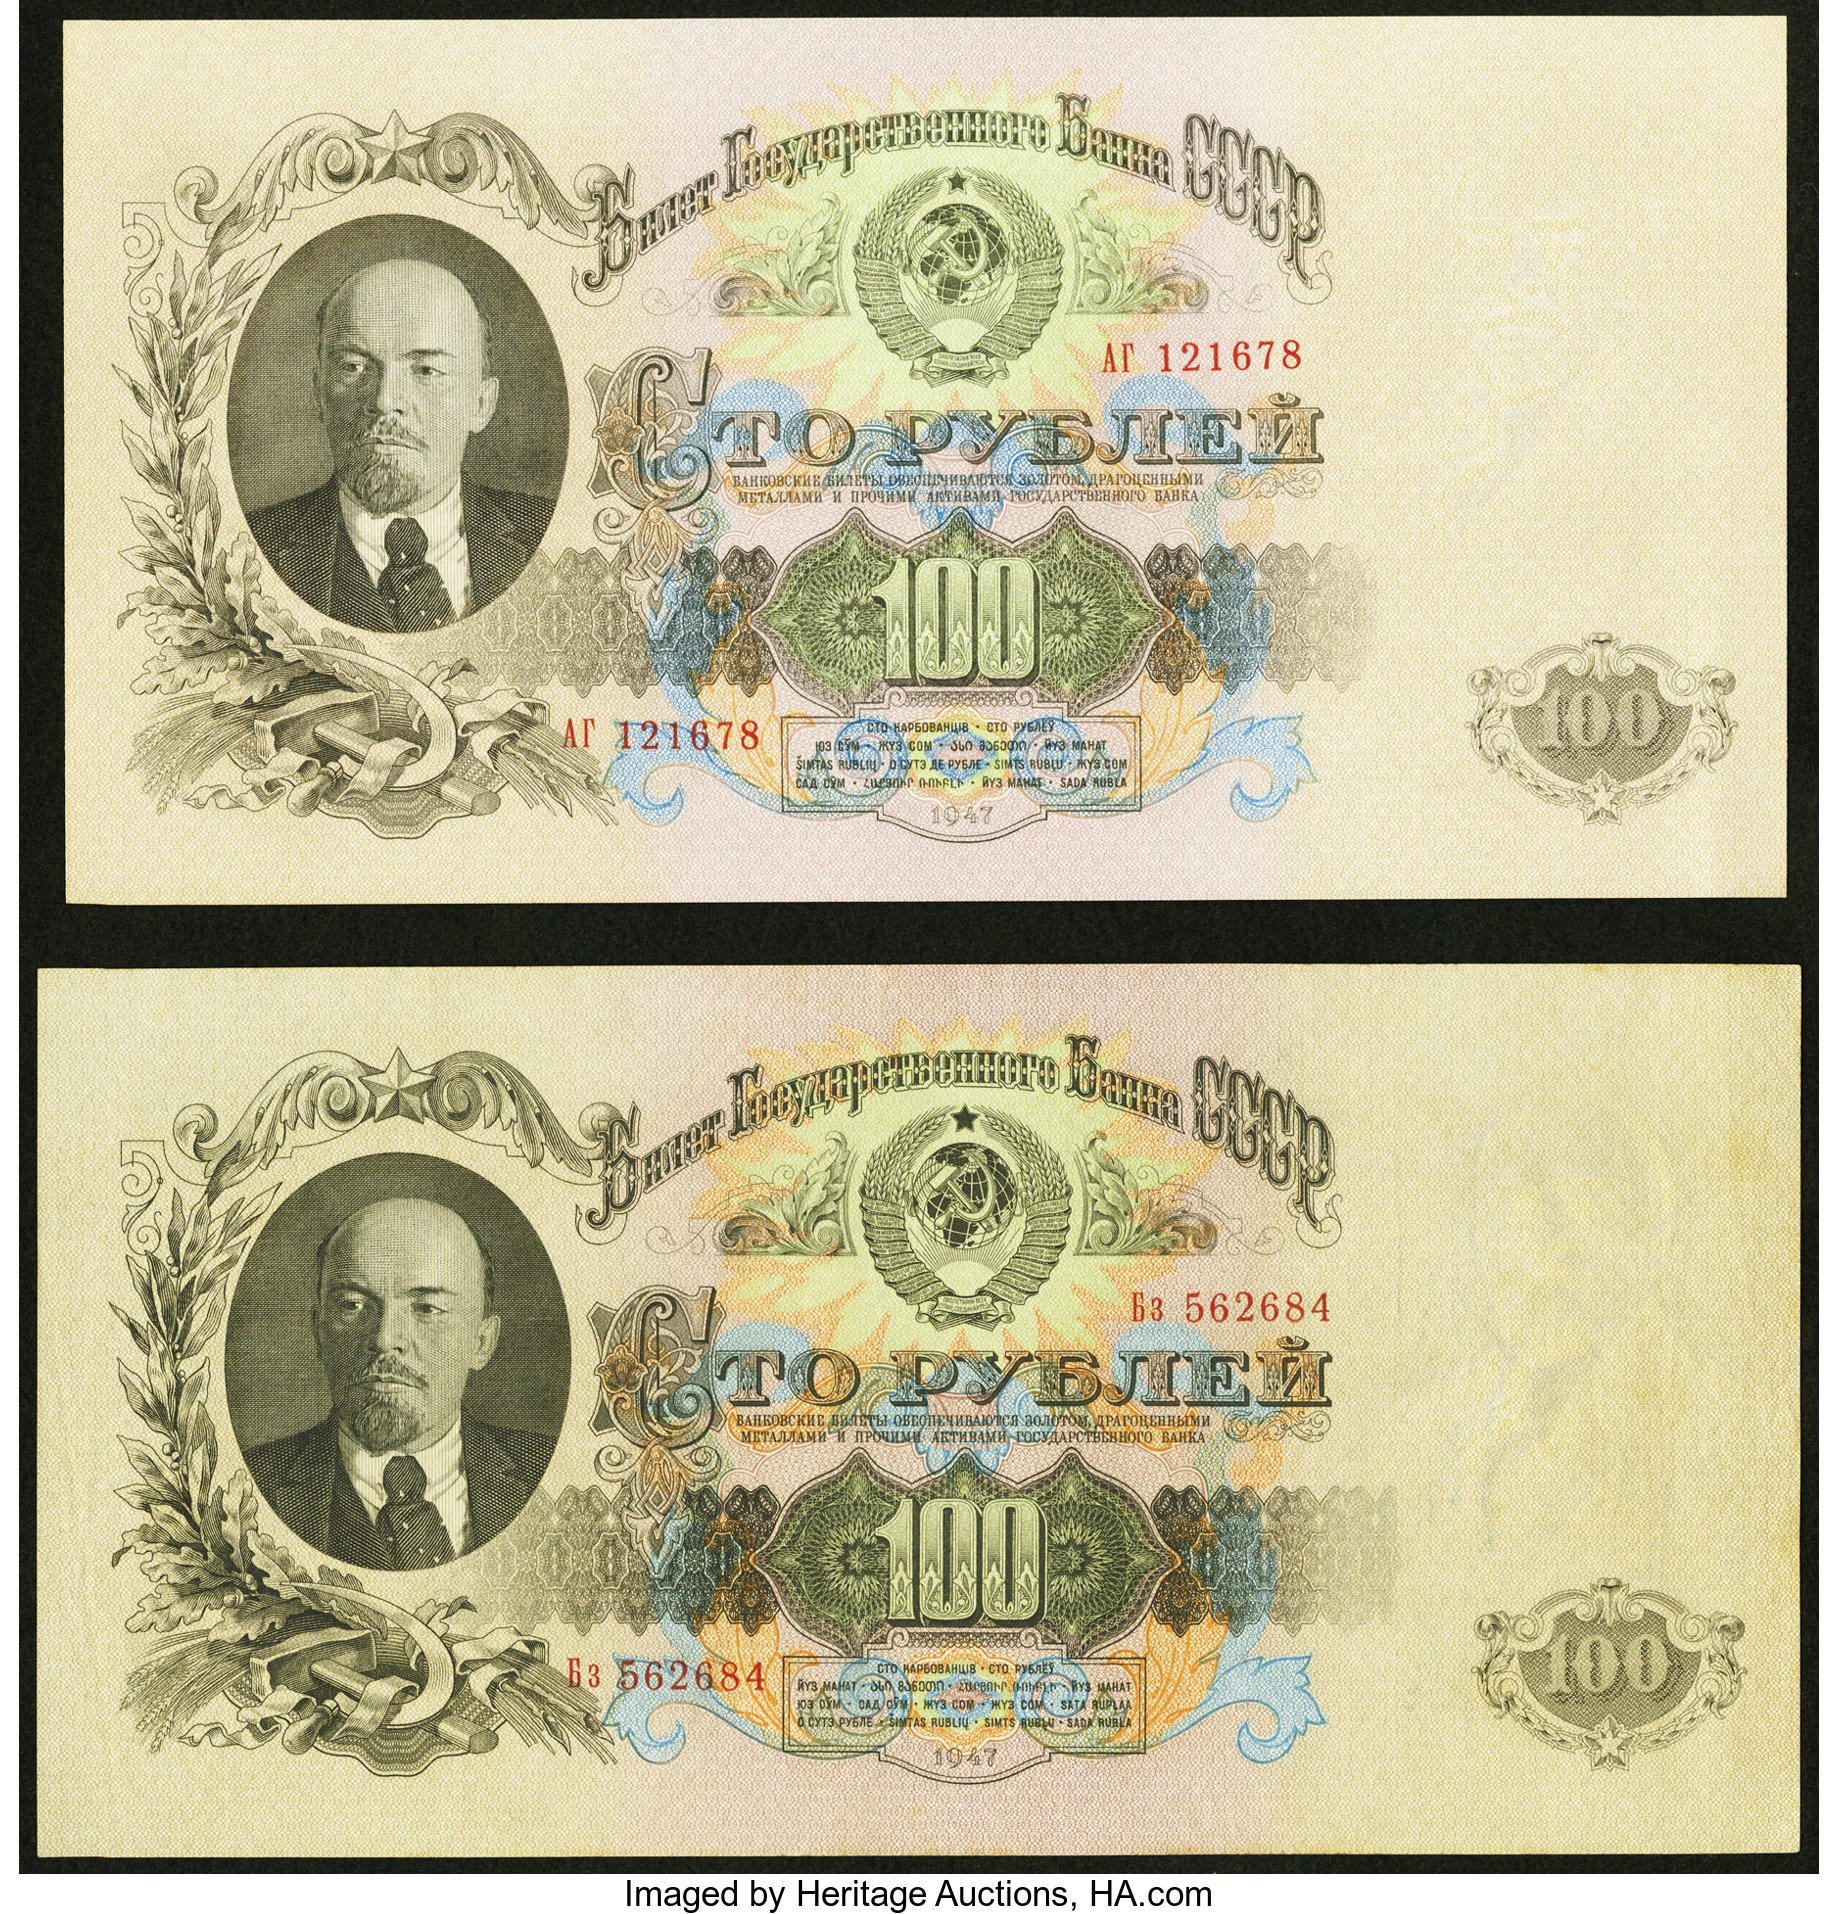 1000 Roubles RUSSIAN USSR BANKNOTE 1992 UNCIRCULATED! GEM